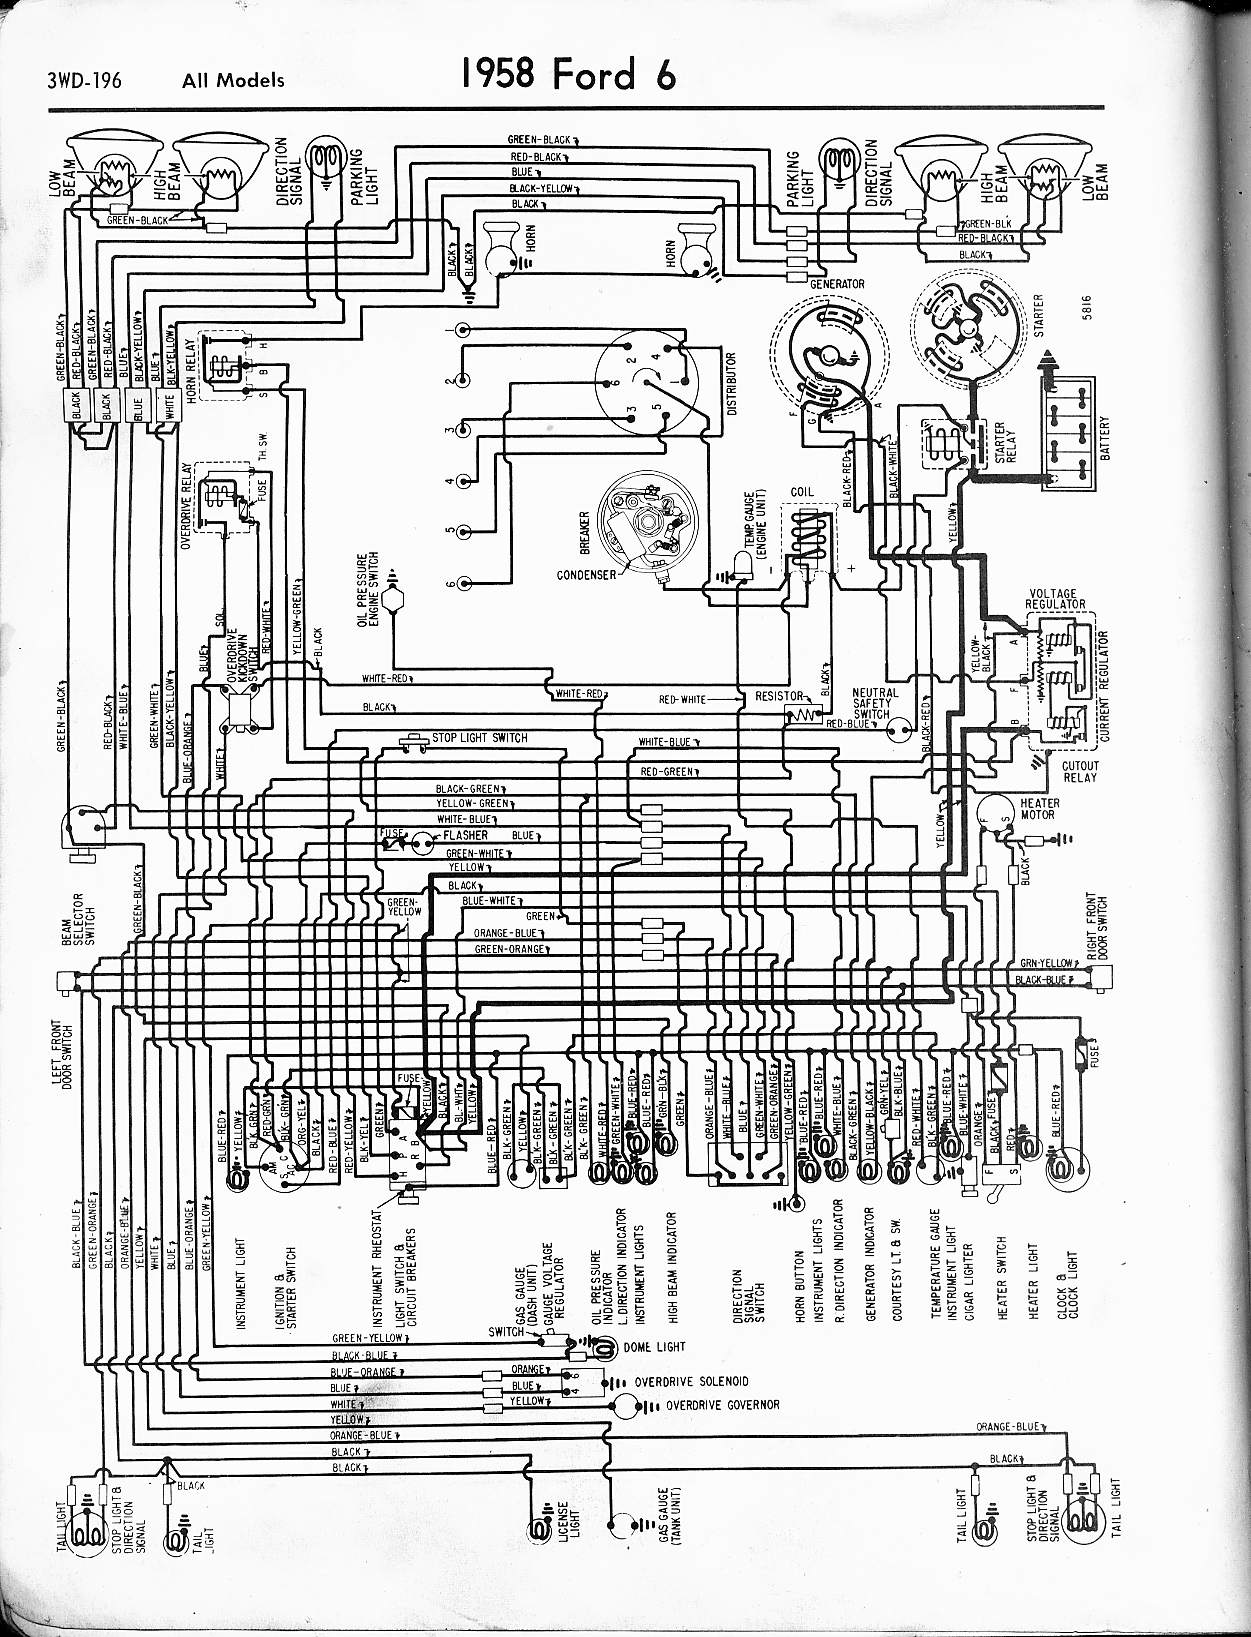 MWire5765 196 57 65 ford wiring diagrams truck wiring schematics at bayanpartner.co